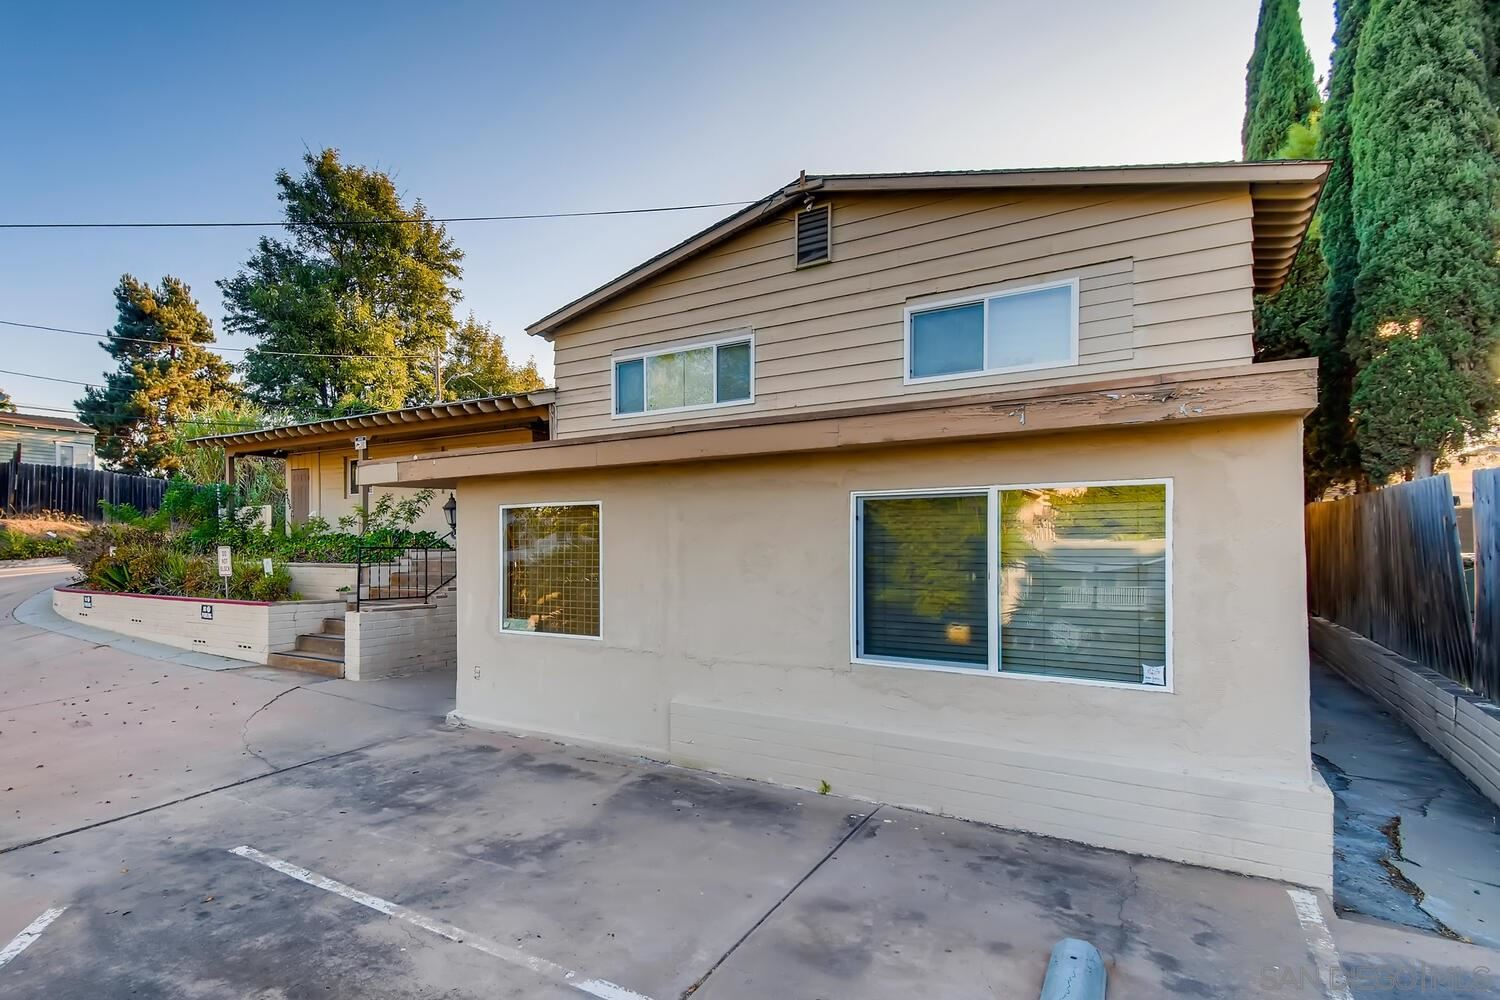 Photo of 2205 El Prado, Lemon Grove, CA 91945 (MLS # 200047297)